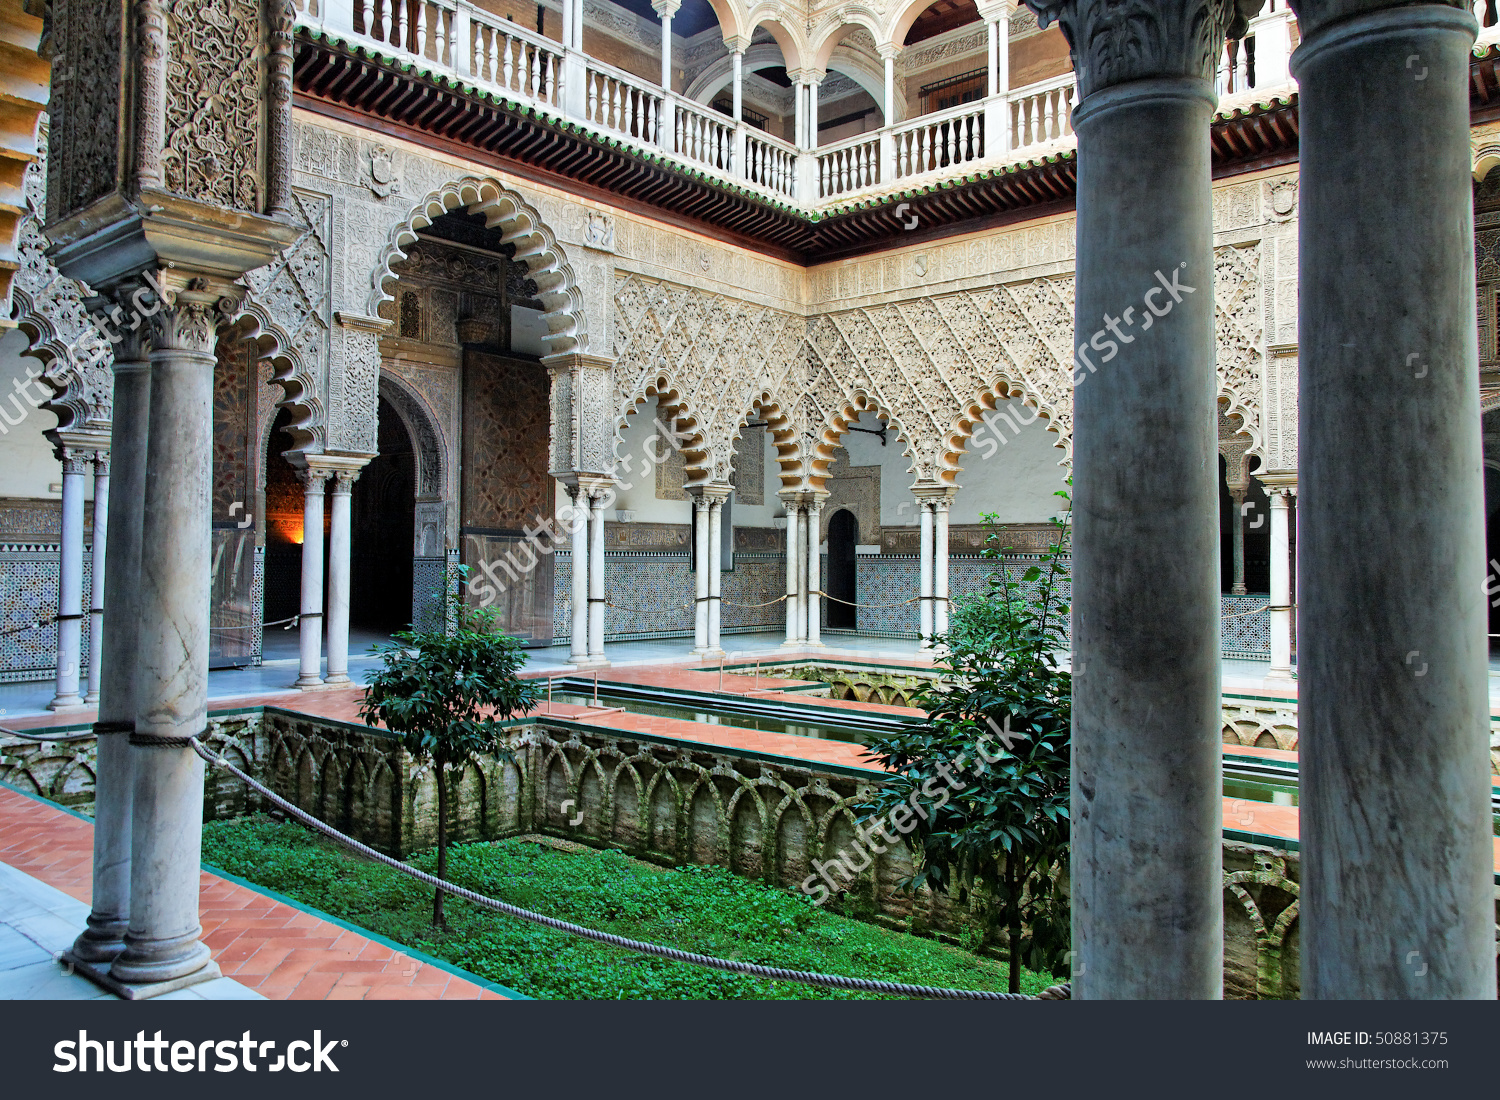 Seville, Real Alcazar Patio Stock Photo 50881375 : Shutterstock.